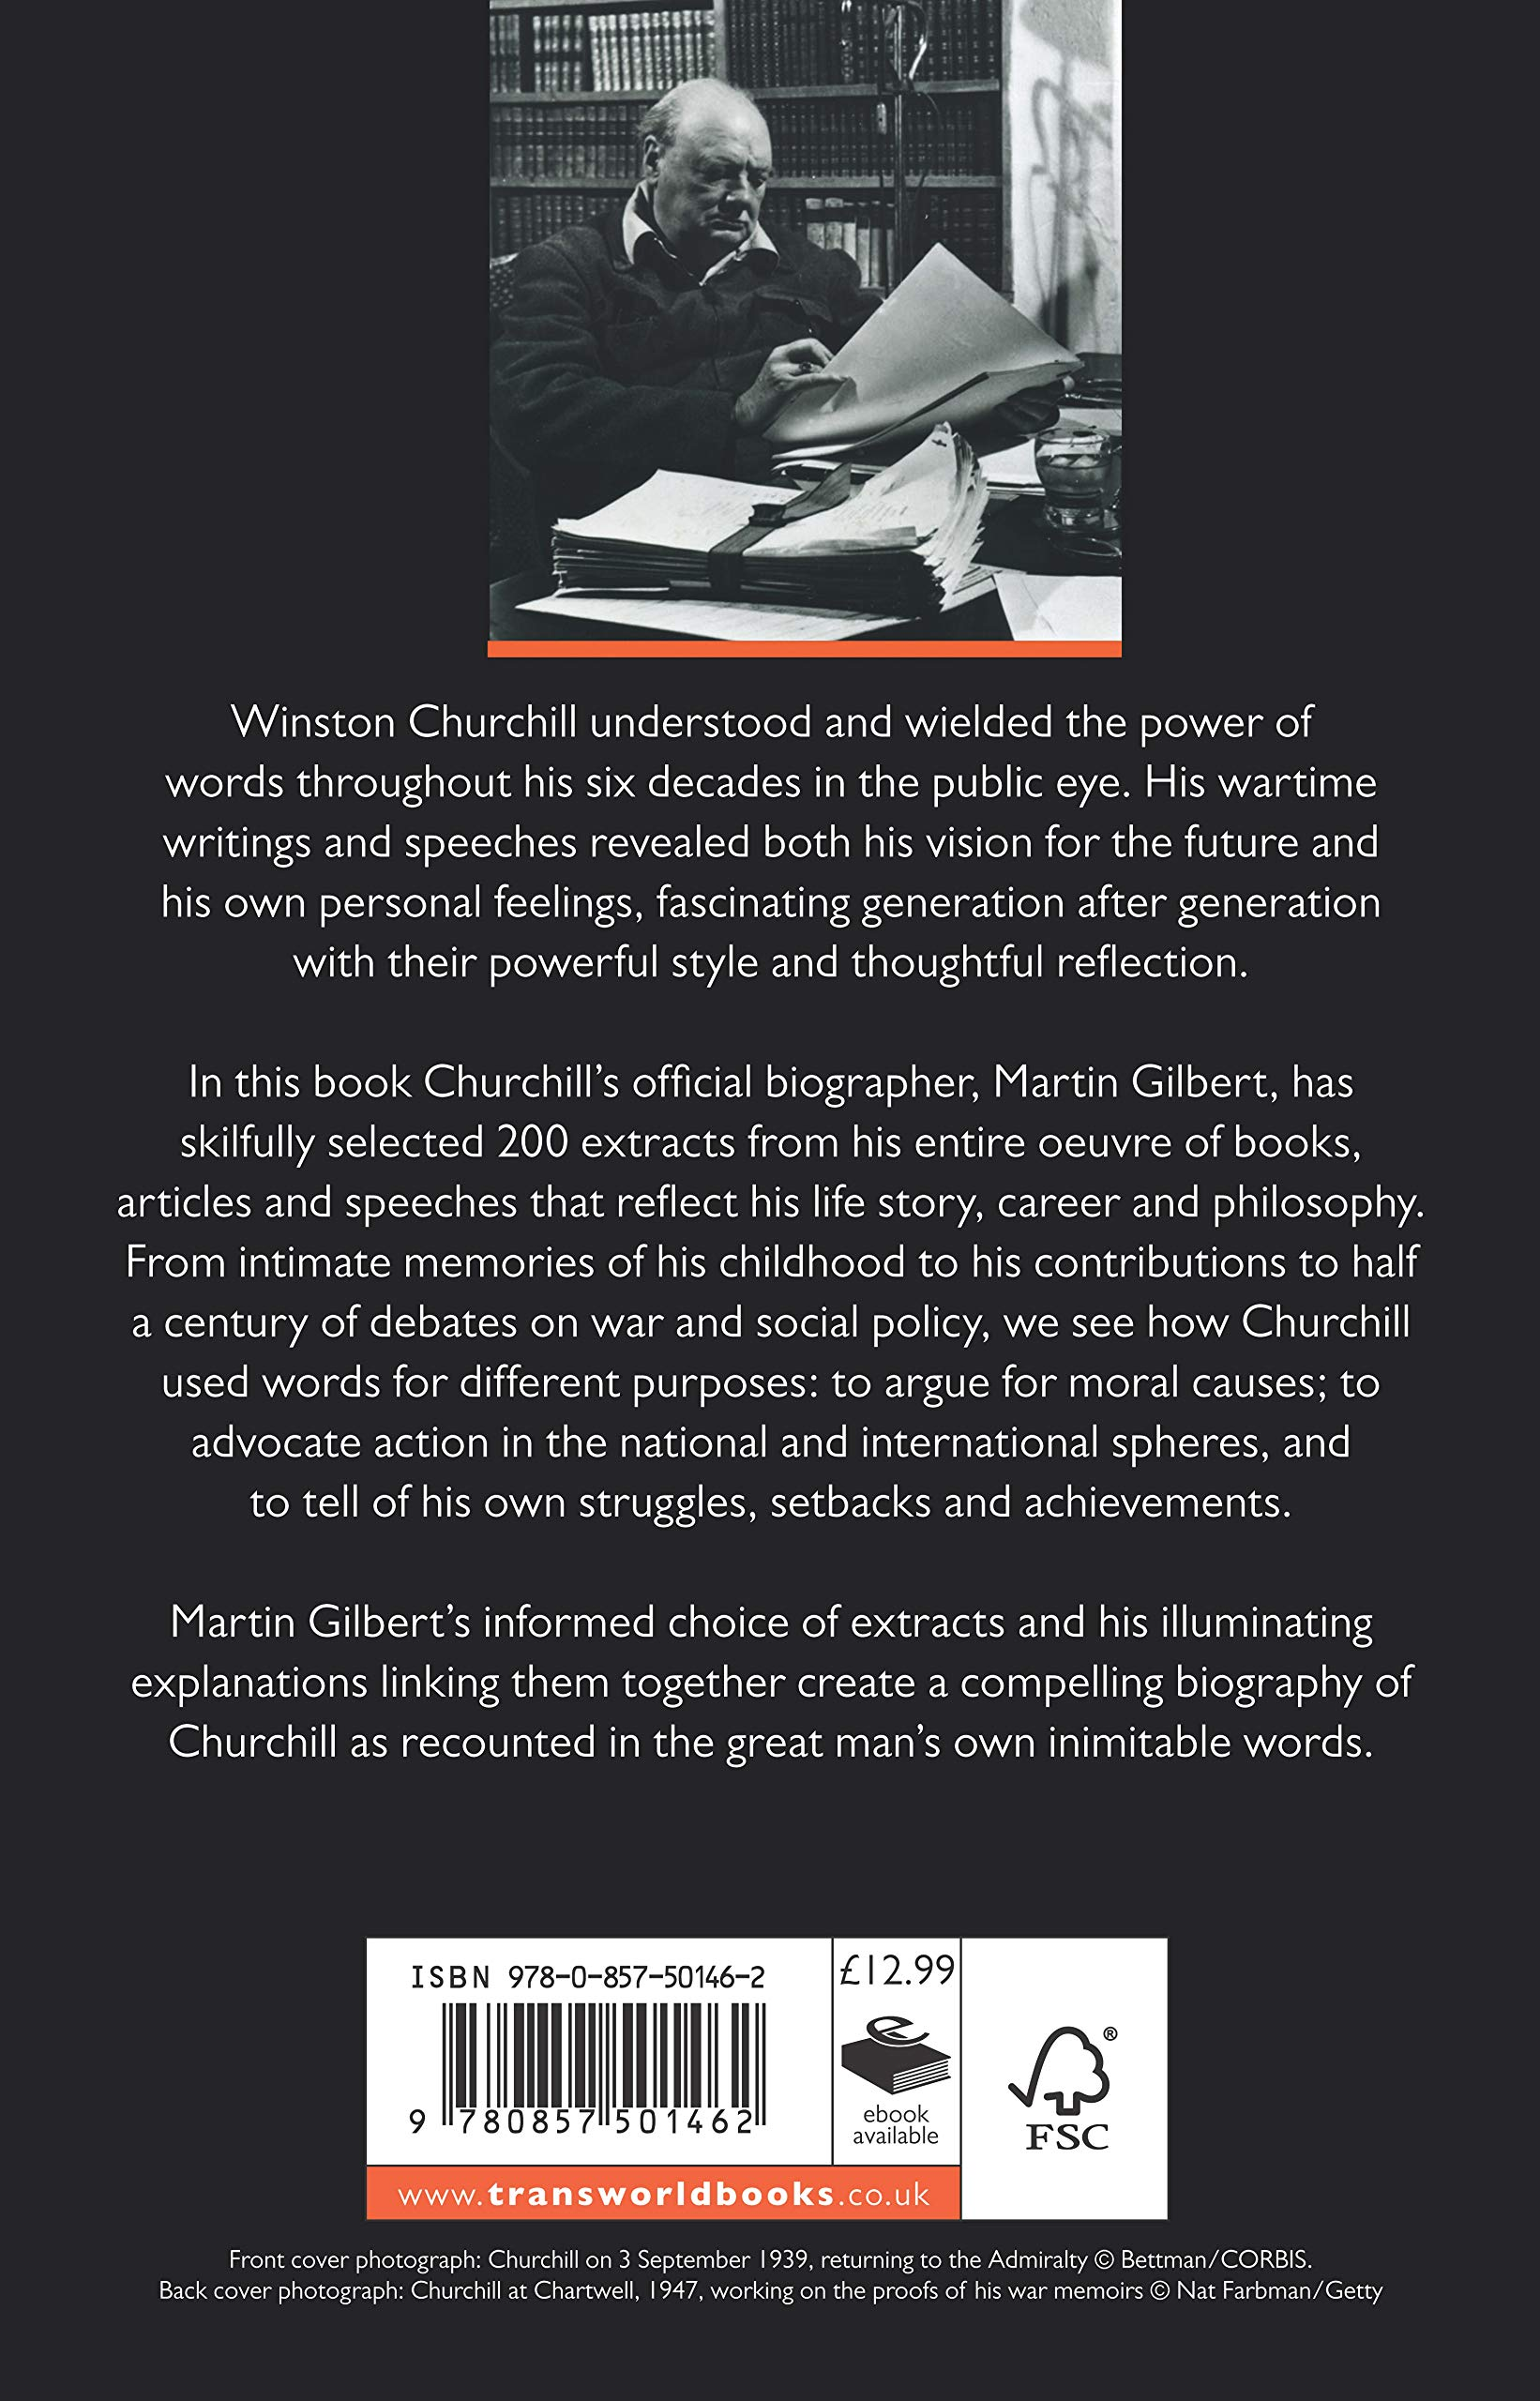 Buy Churchill: The Power of Words Book Online at Low Prices in India |  Churchill: The Power of Words Reviews & Ratings - Amazon.in